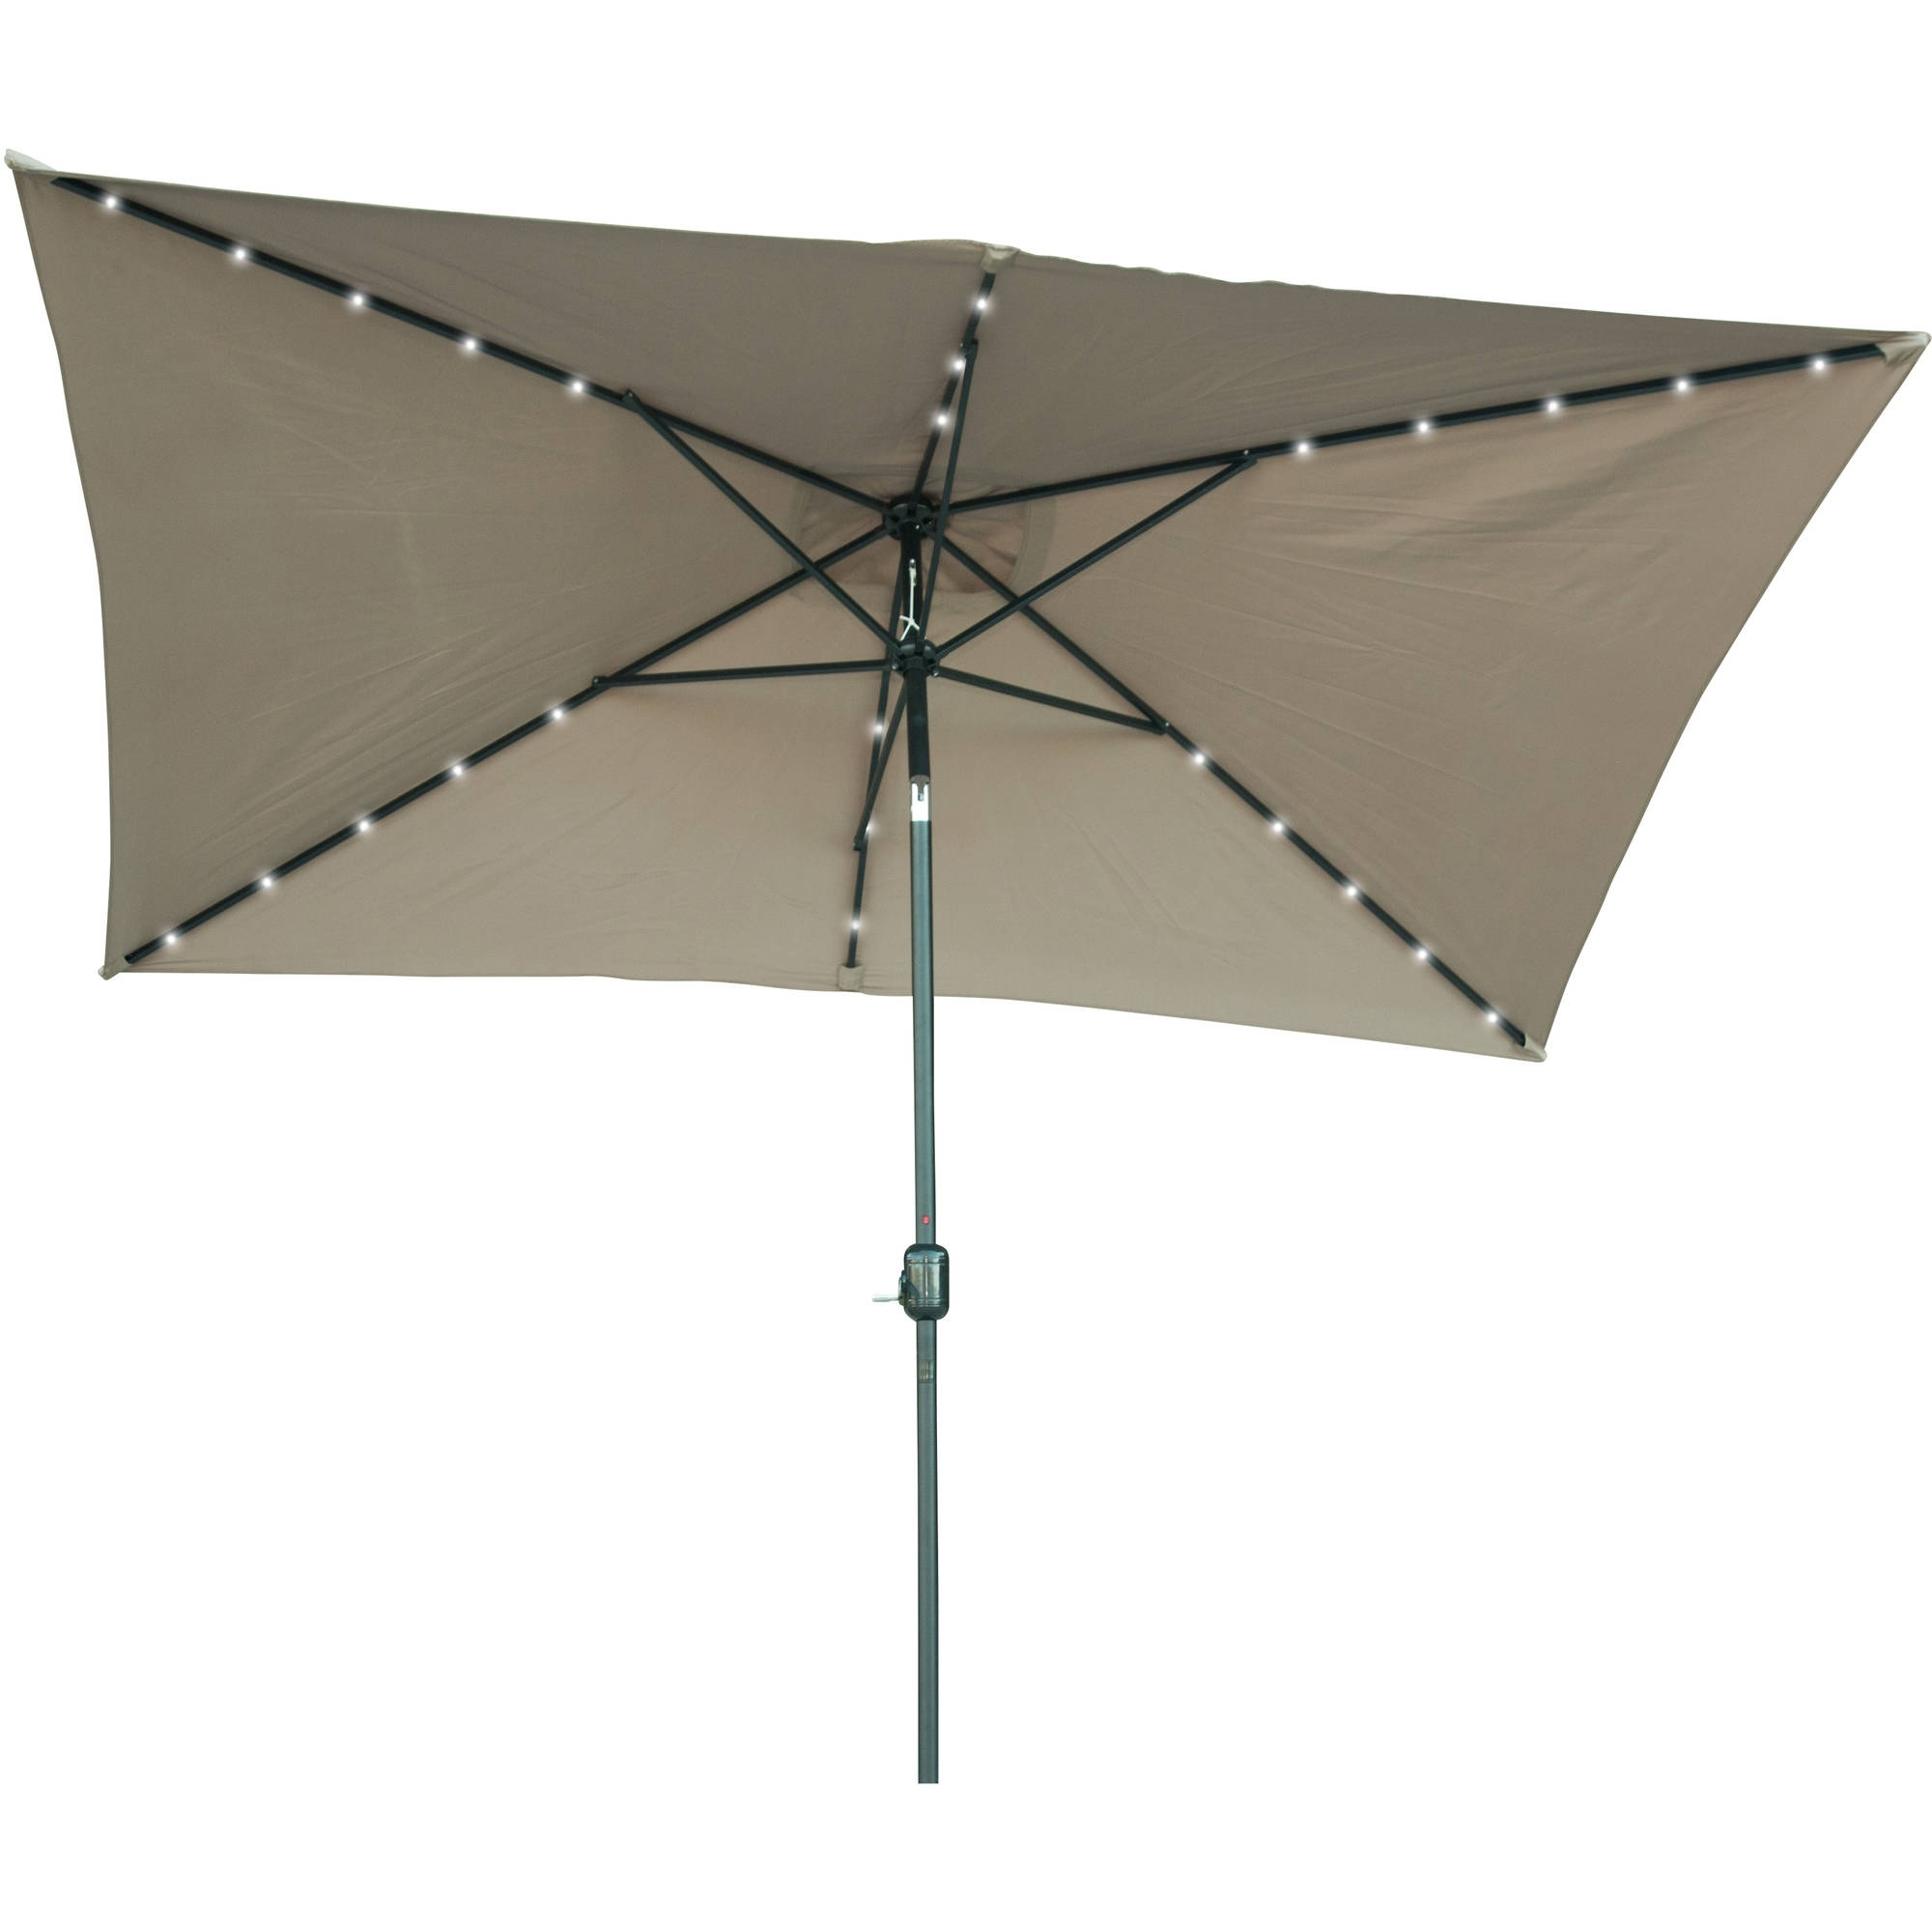 Newest Rectangular Solar Powered Led Lighted Patio Umbrella – 10' X (View 5 of 20)